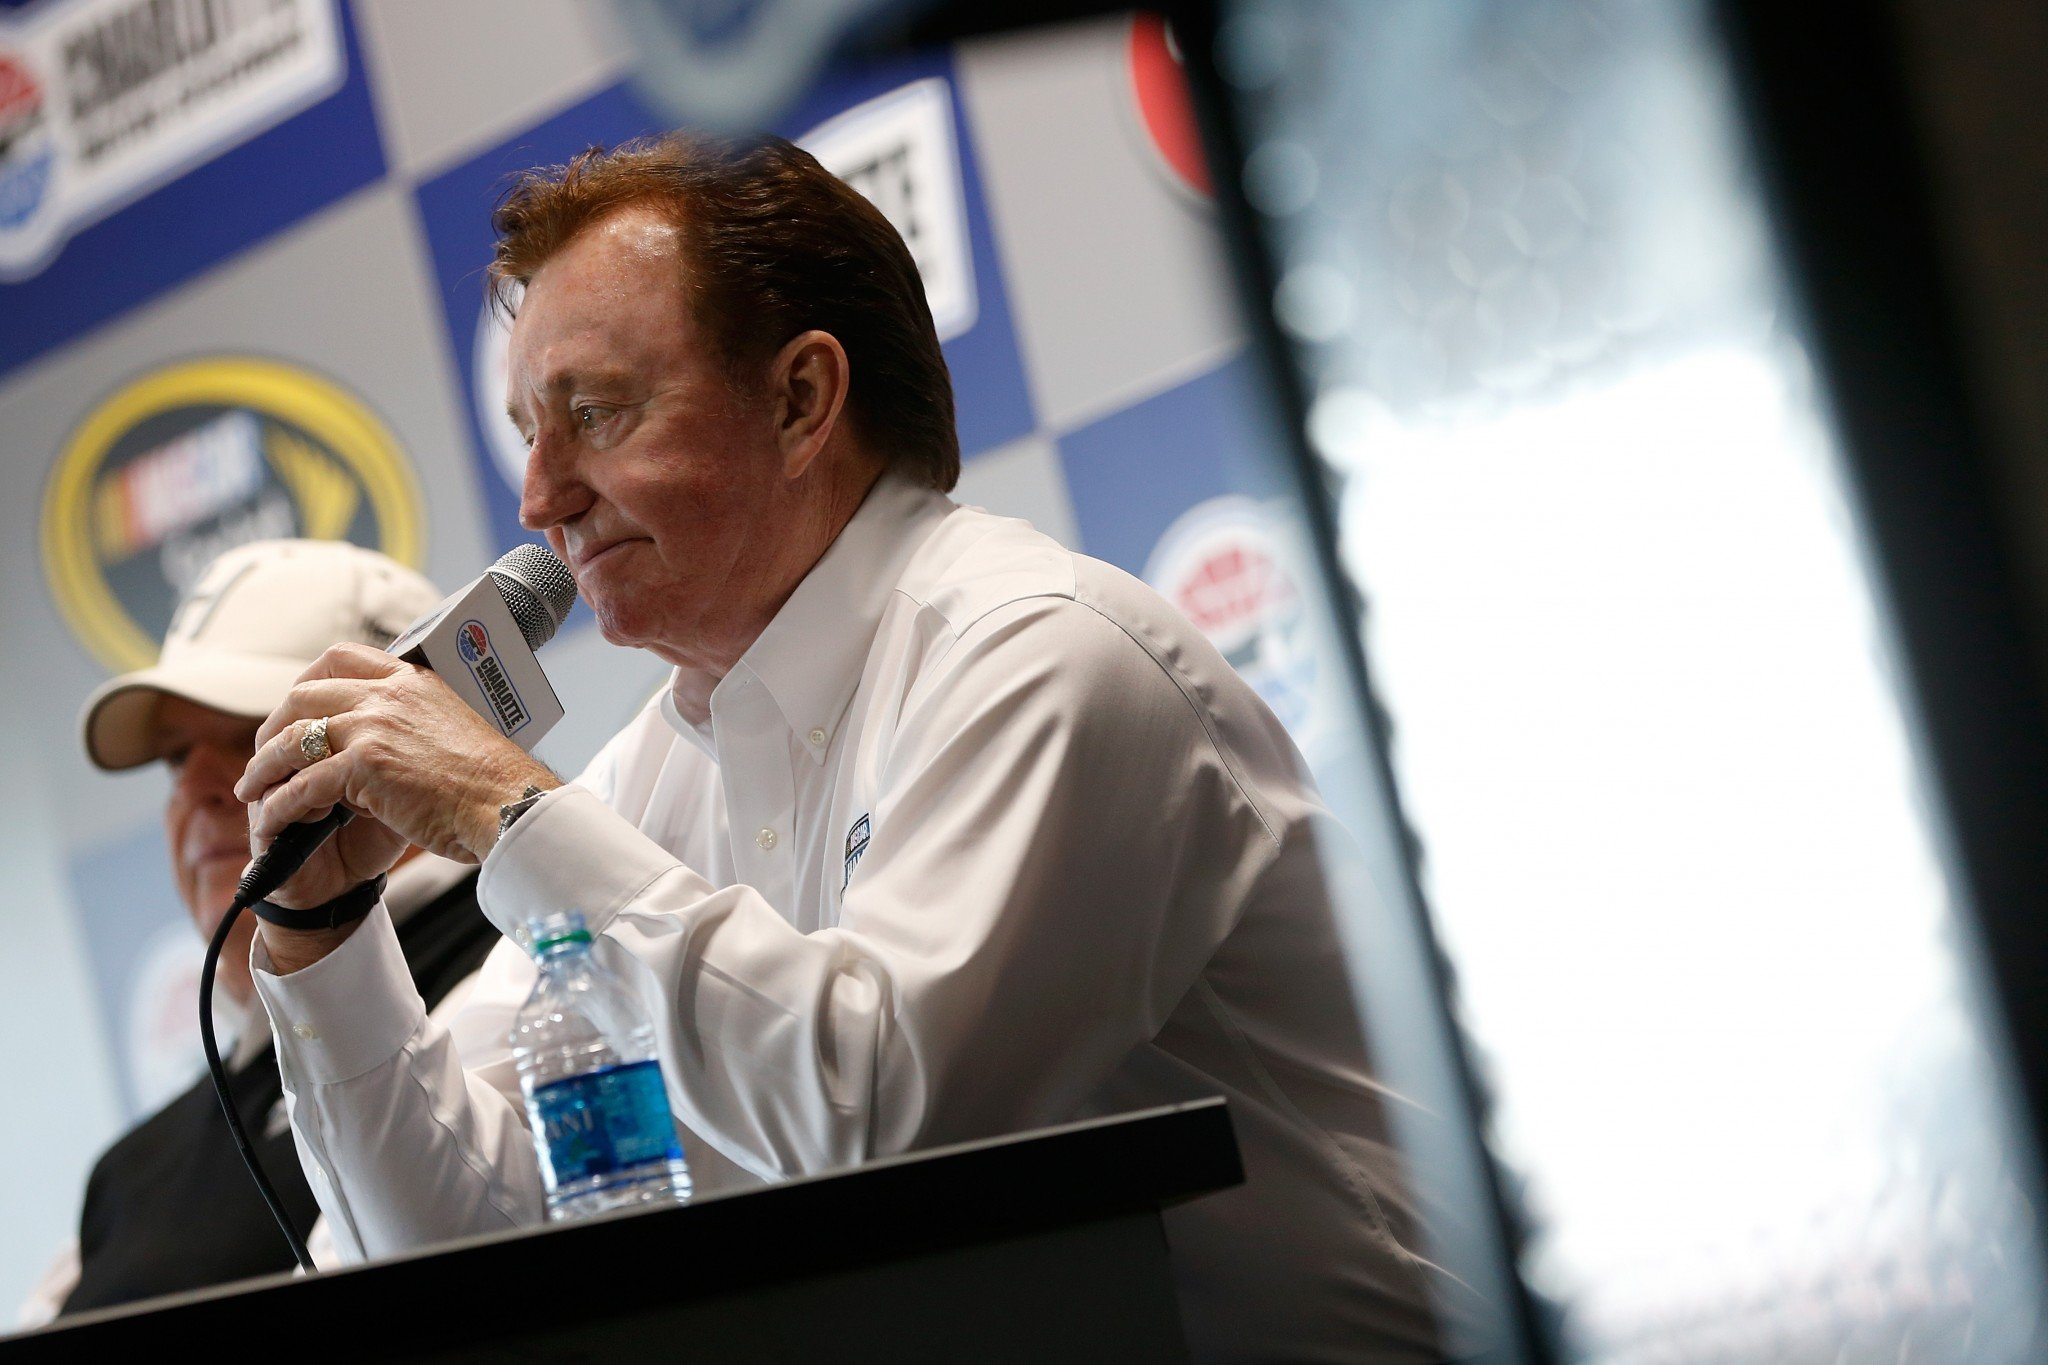 Richard Childress will be inducted into the NASCAR HOF in 2017 (Getty).